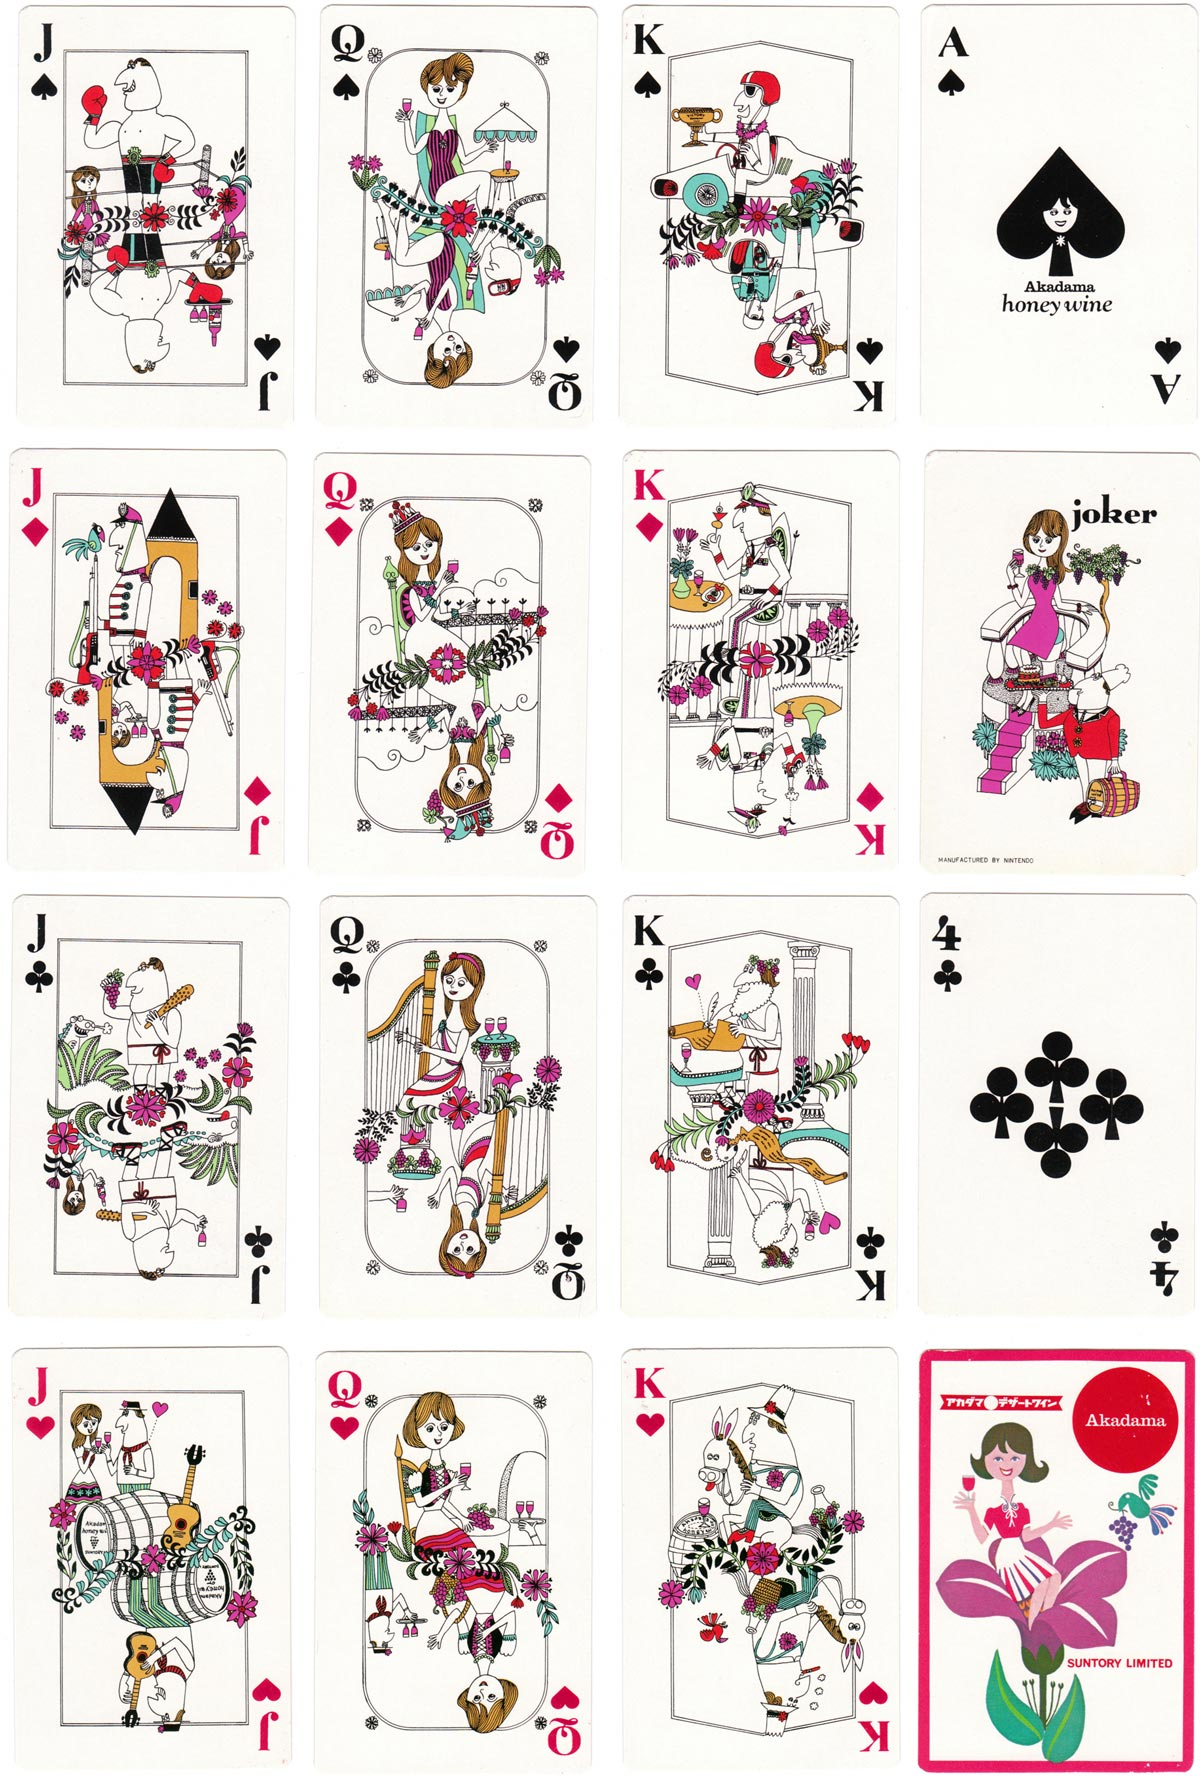 Suntory Akadama Honey Wine playing cards manufactured by Nintendo, Japan, c.1970